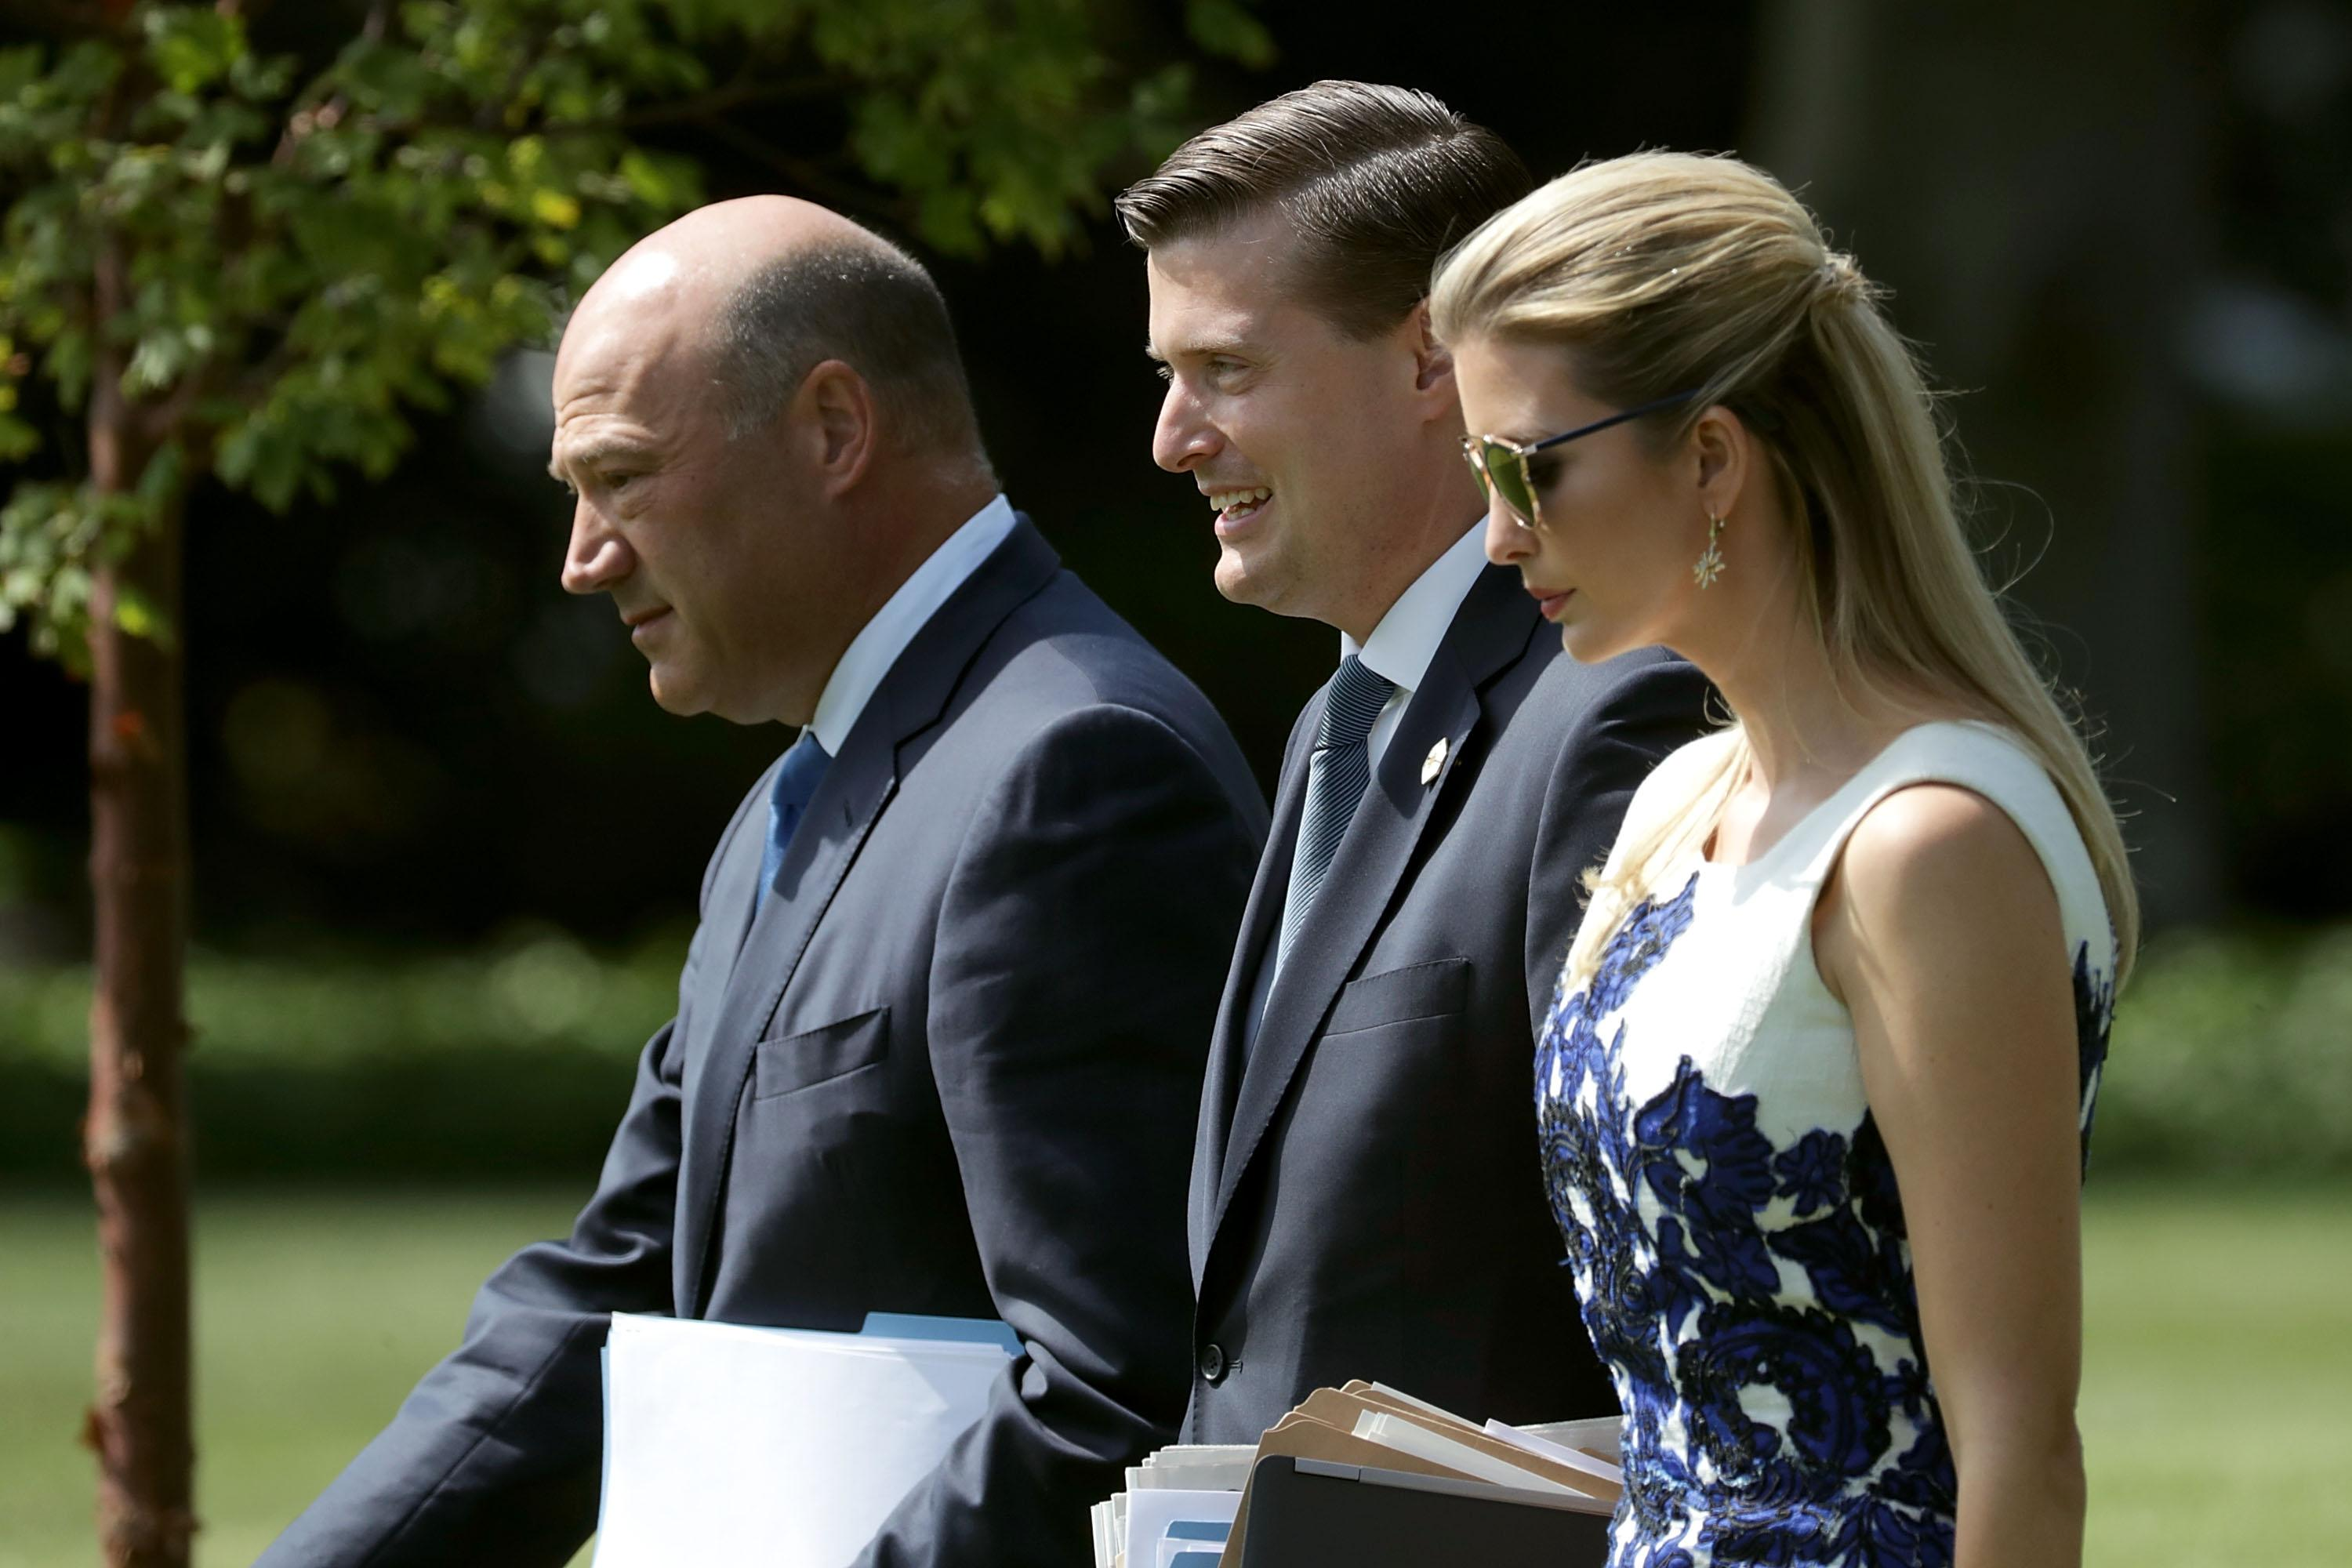 Trump's confidantes explain the confounding reason Trump won't fire John Kelly